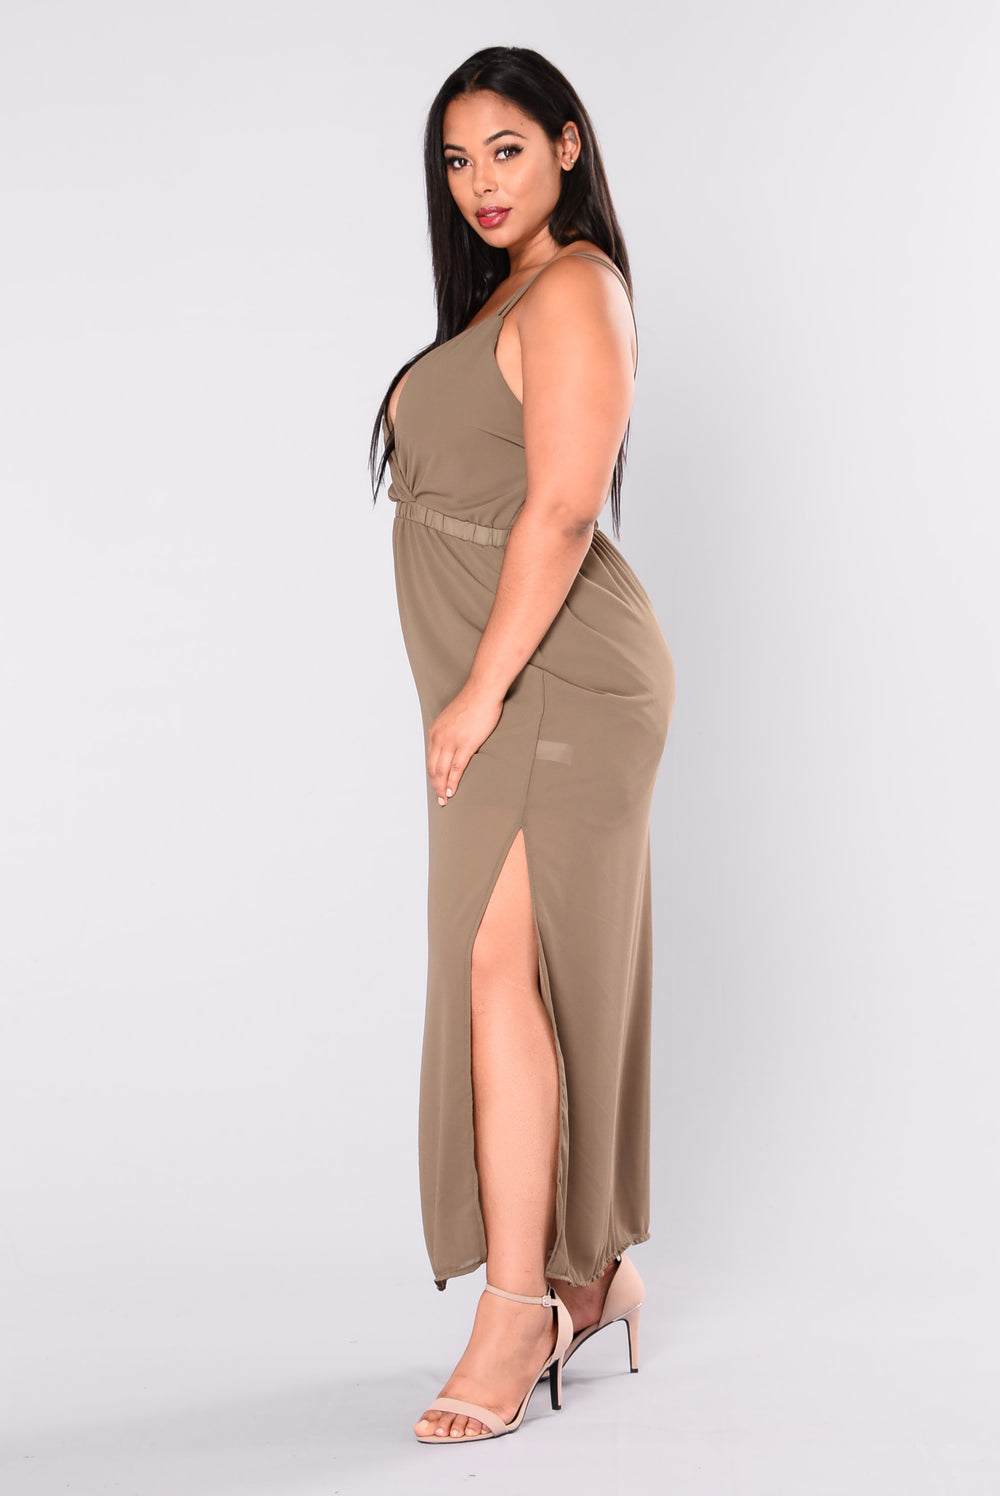 Pool Side Service Maxi Dress - Olive